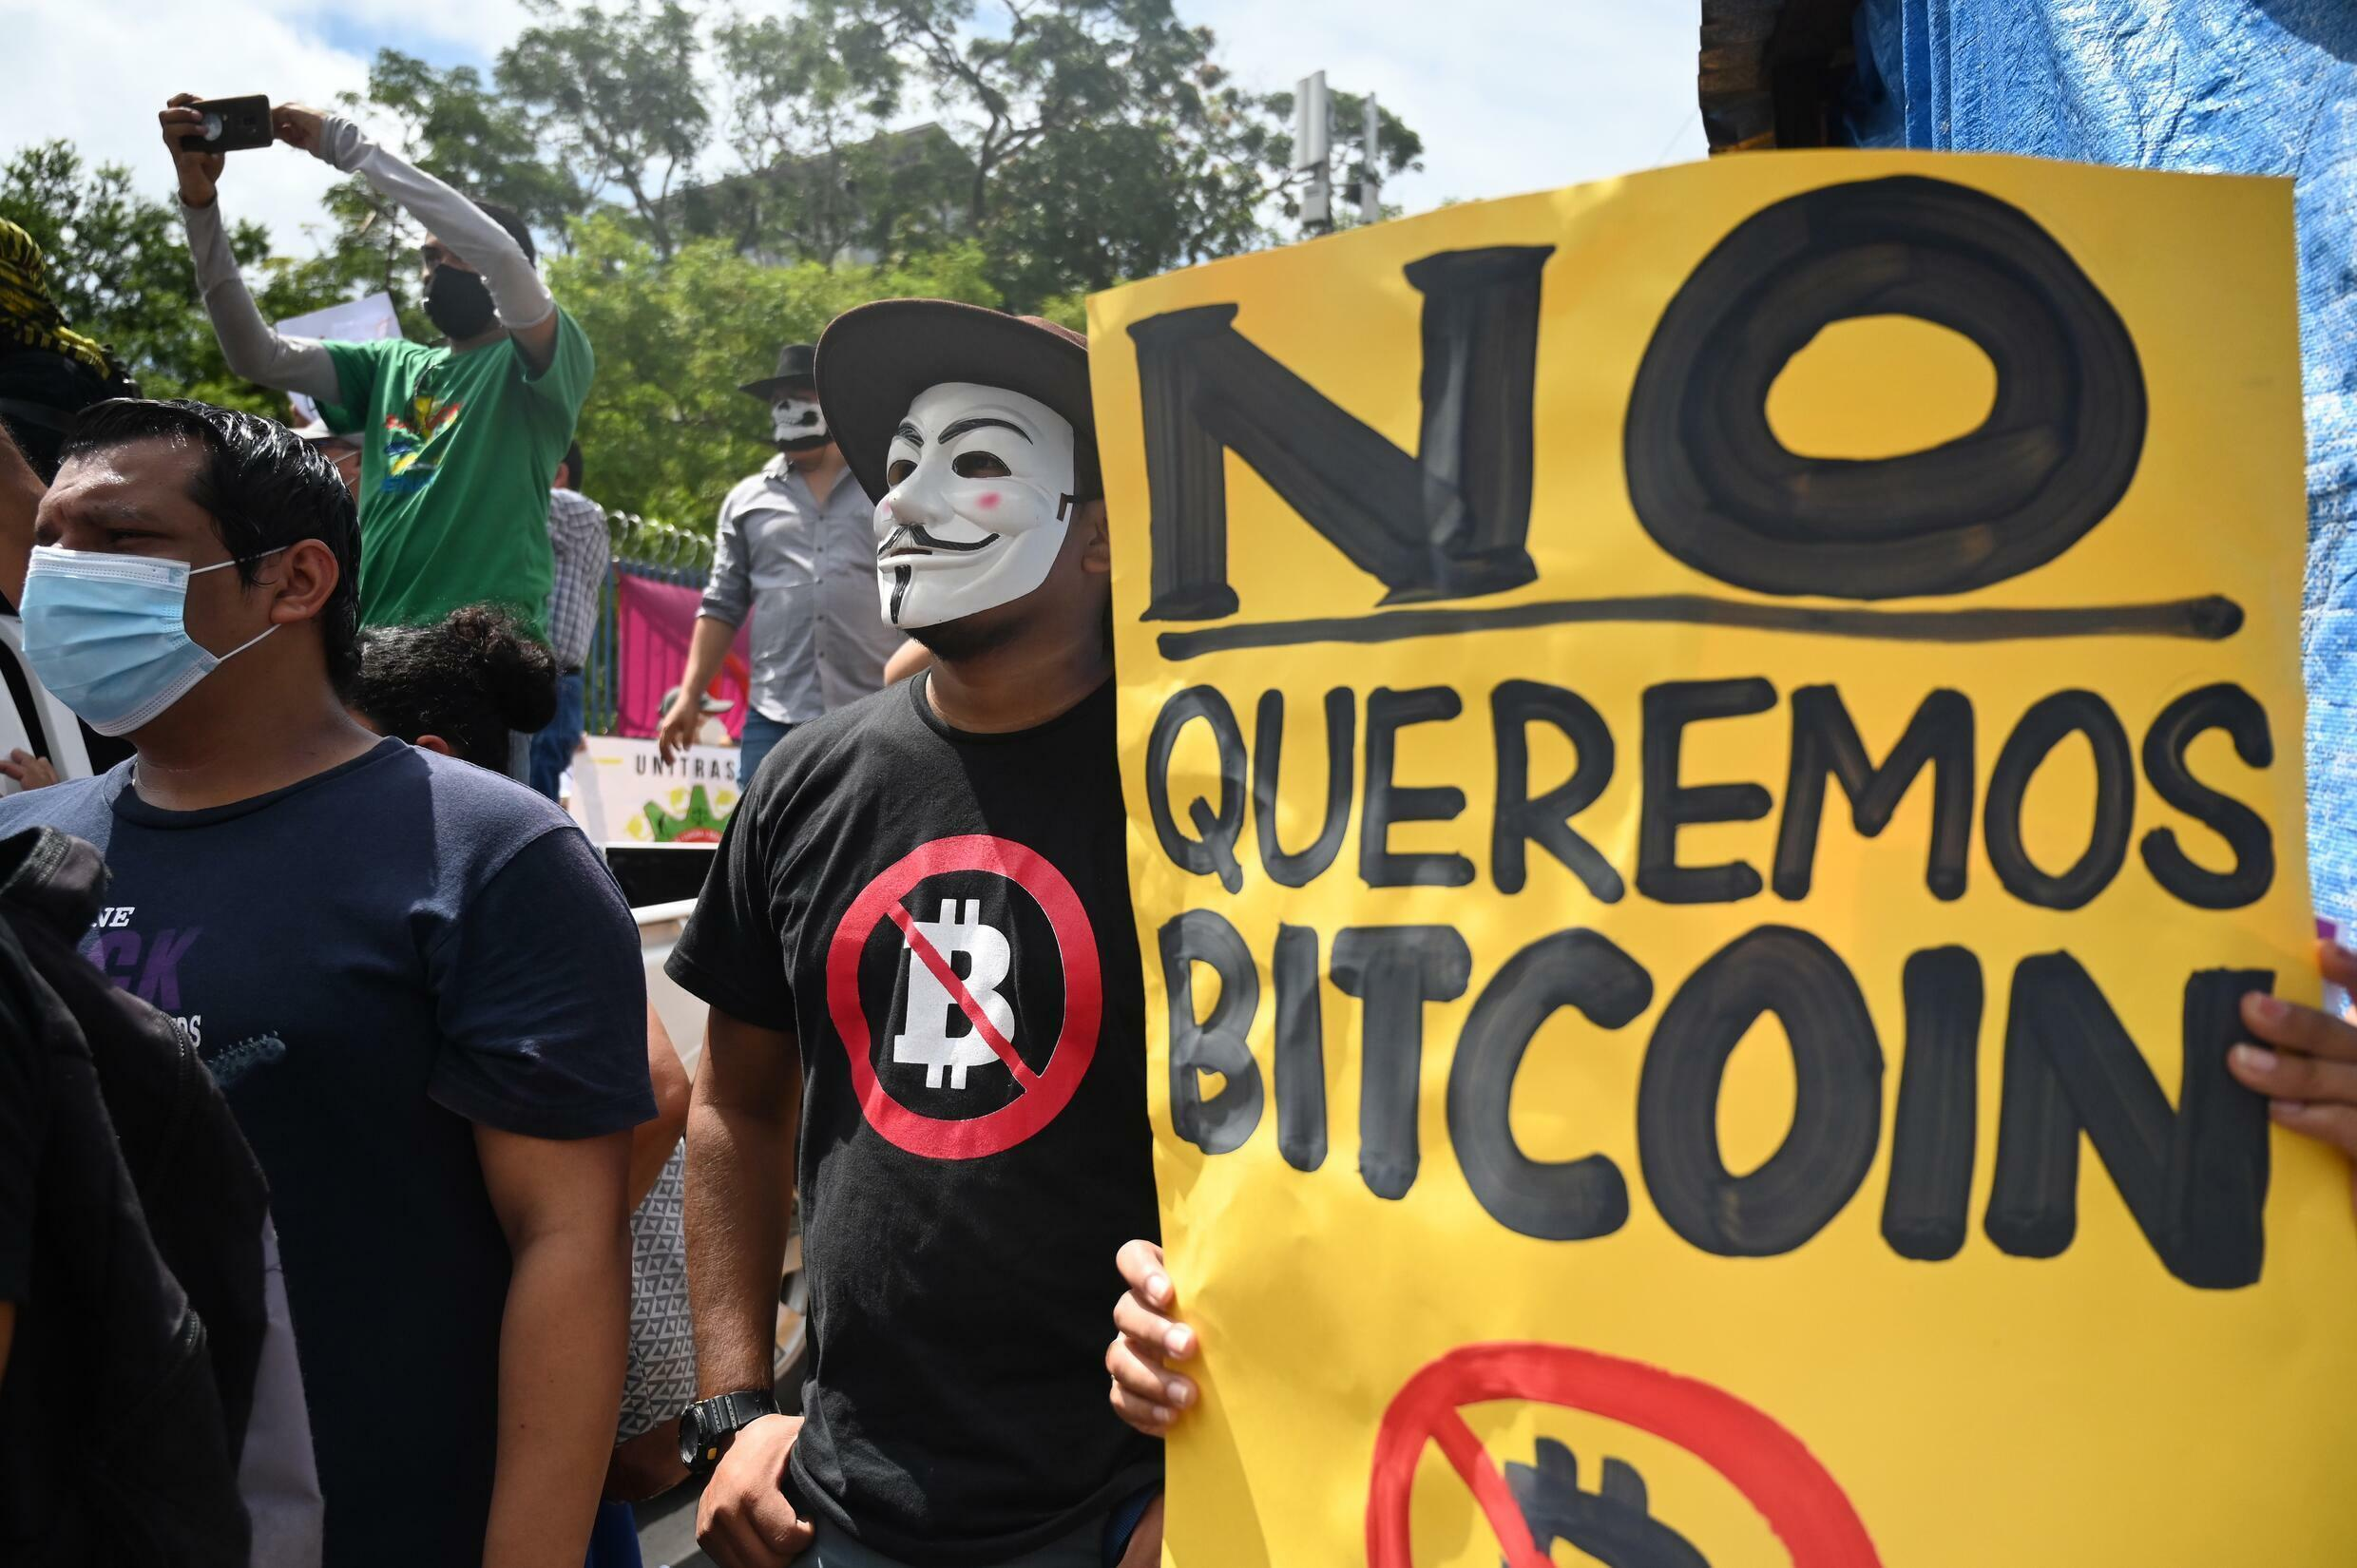 In world first, bitcoin becomes legal tender in El Salvador - France 24